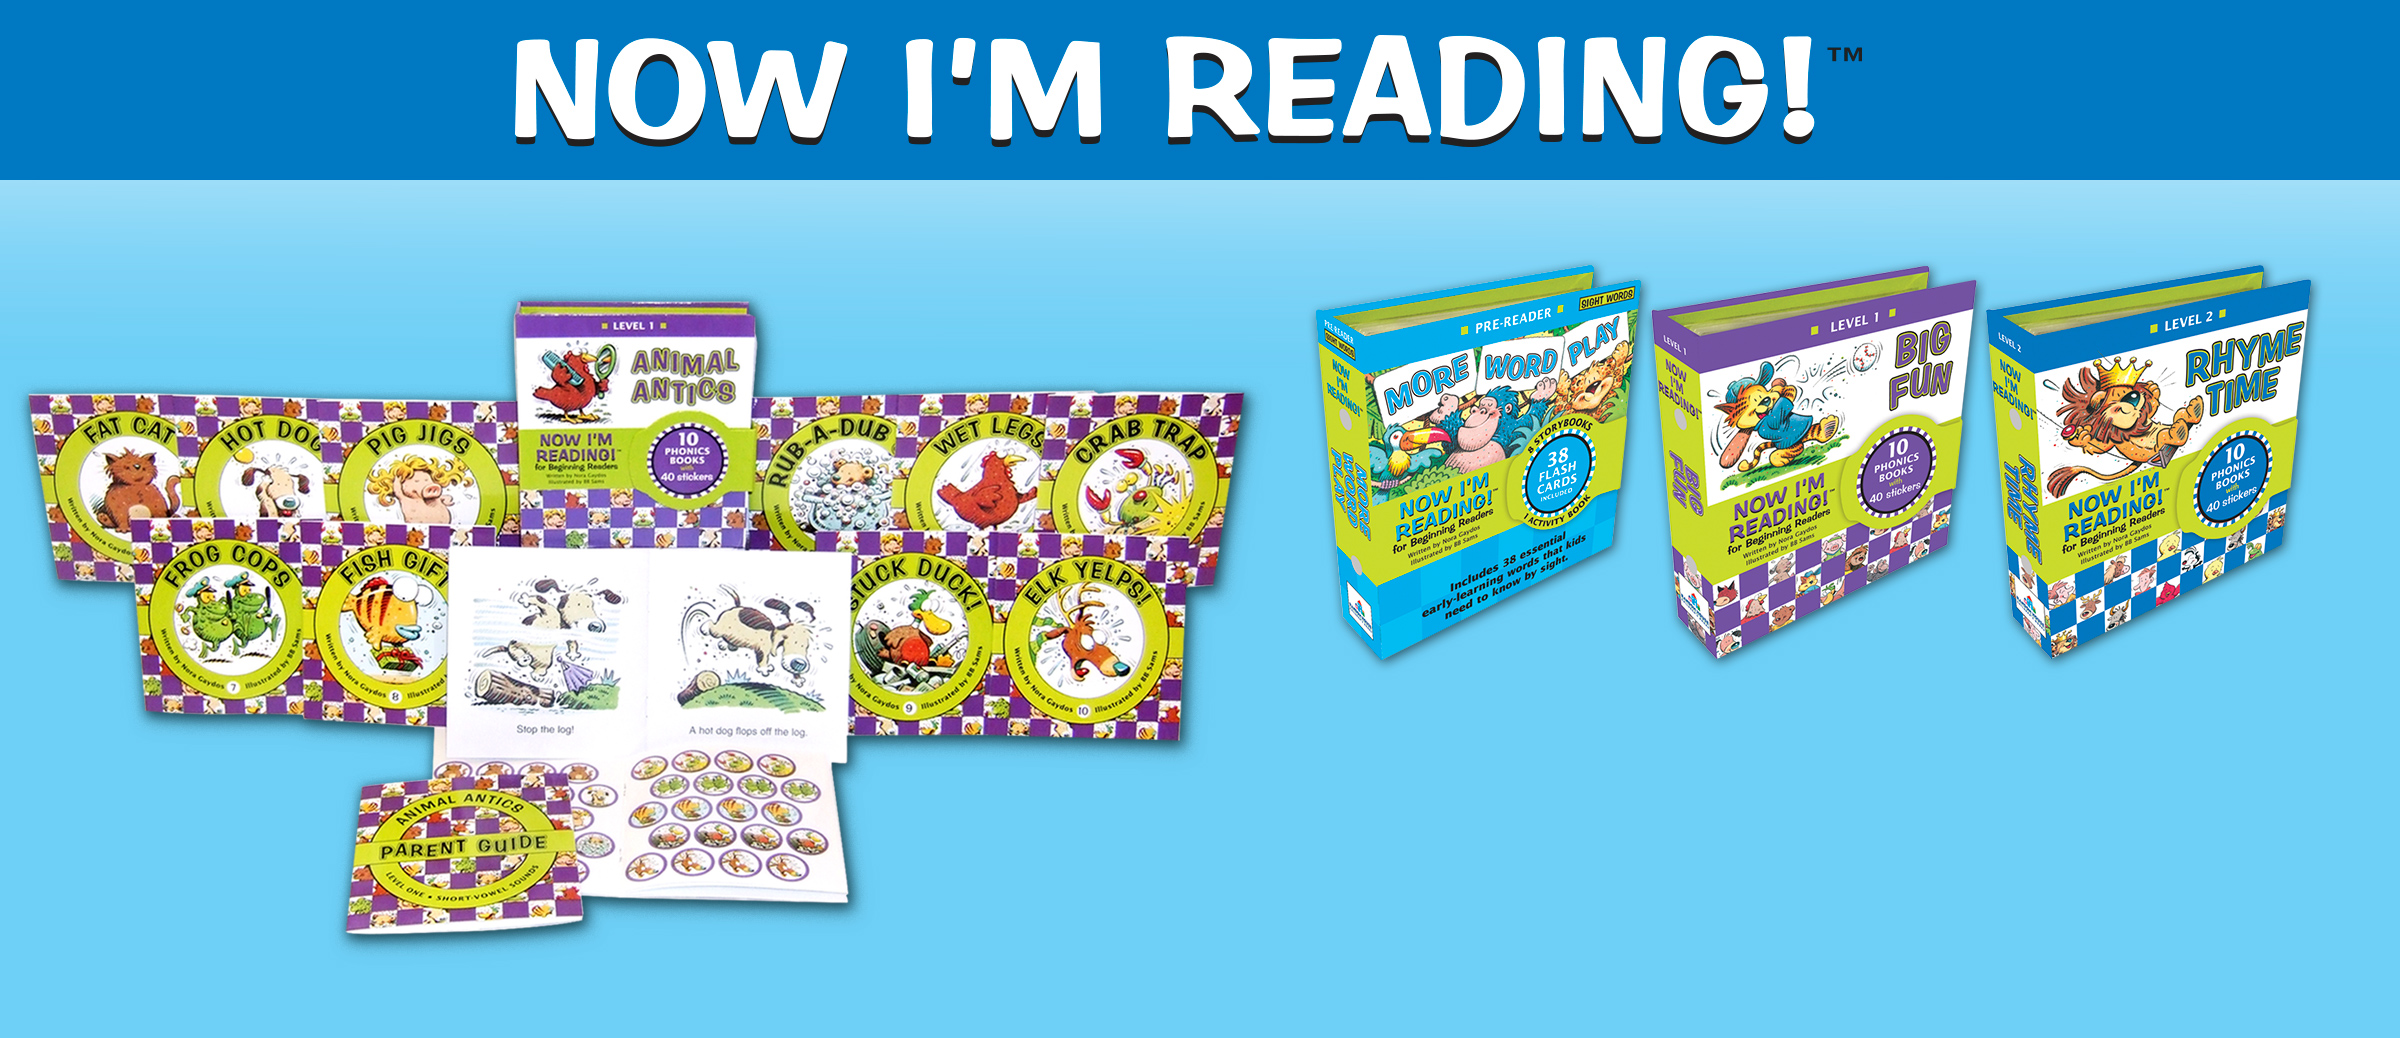 Worksheet Reading Programs For Children step into reading now im